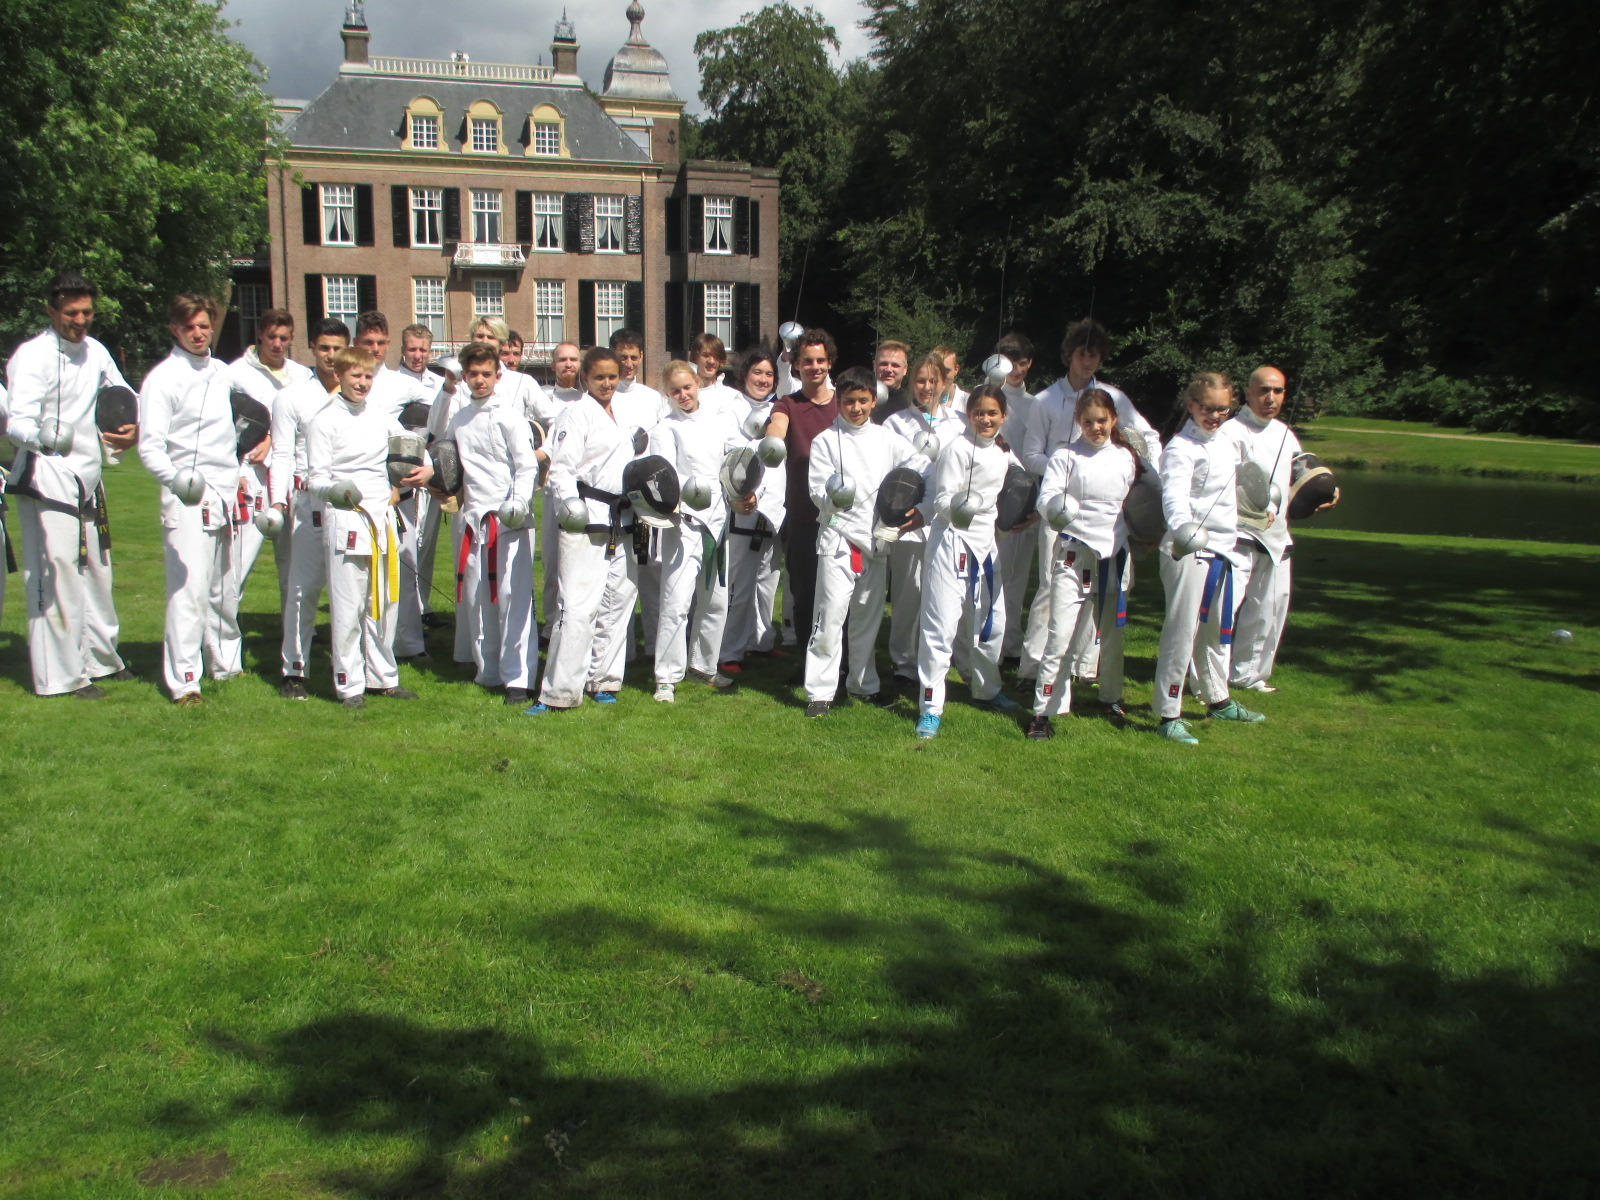 Taekwon-Do kamp 2016 - ITF Royal Dutch